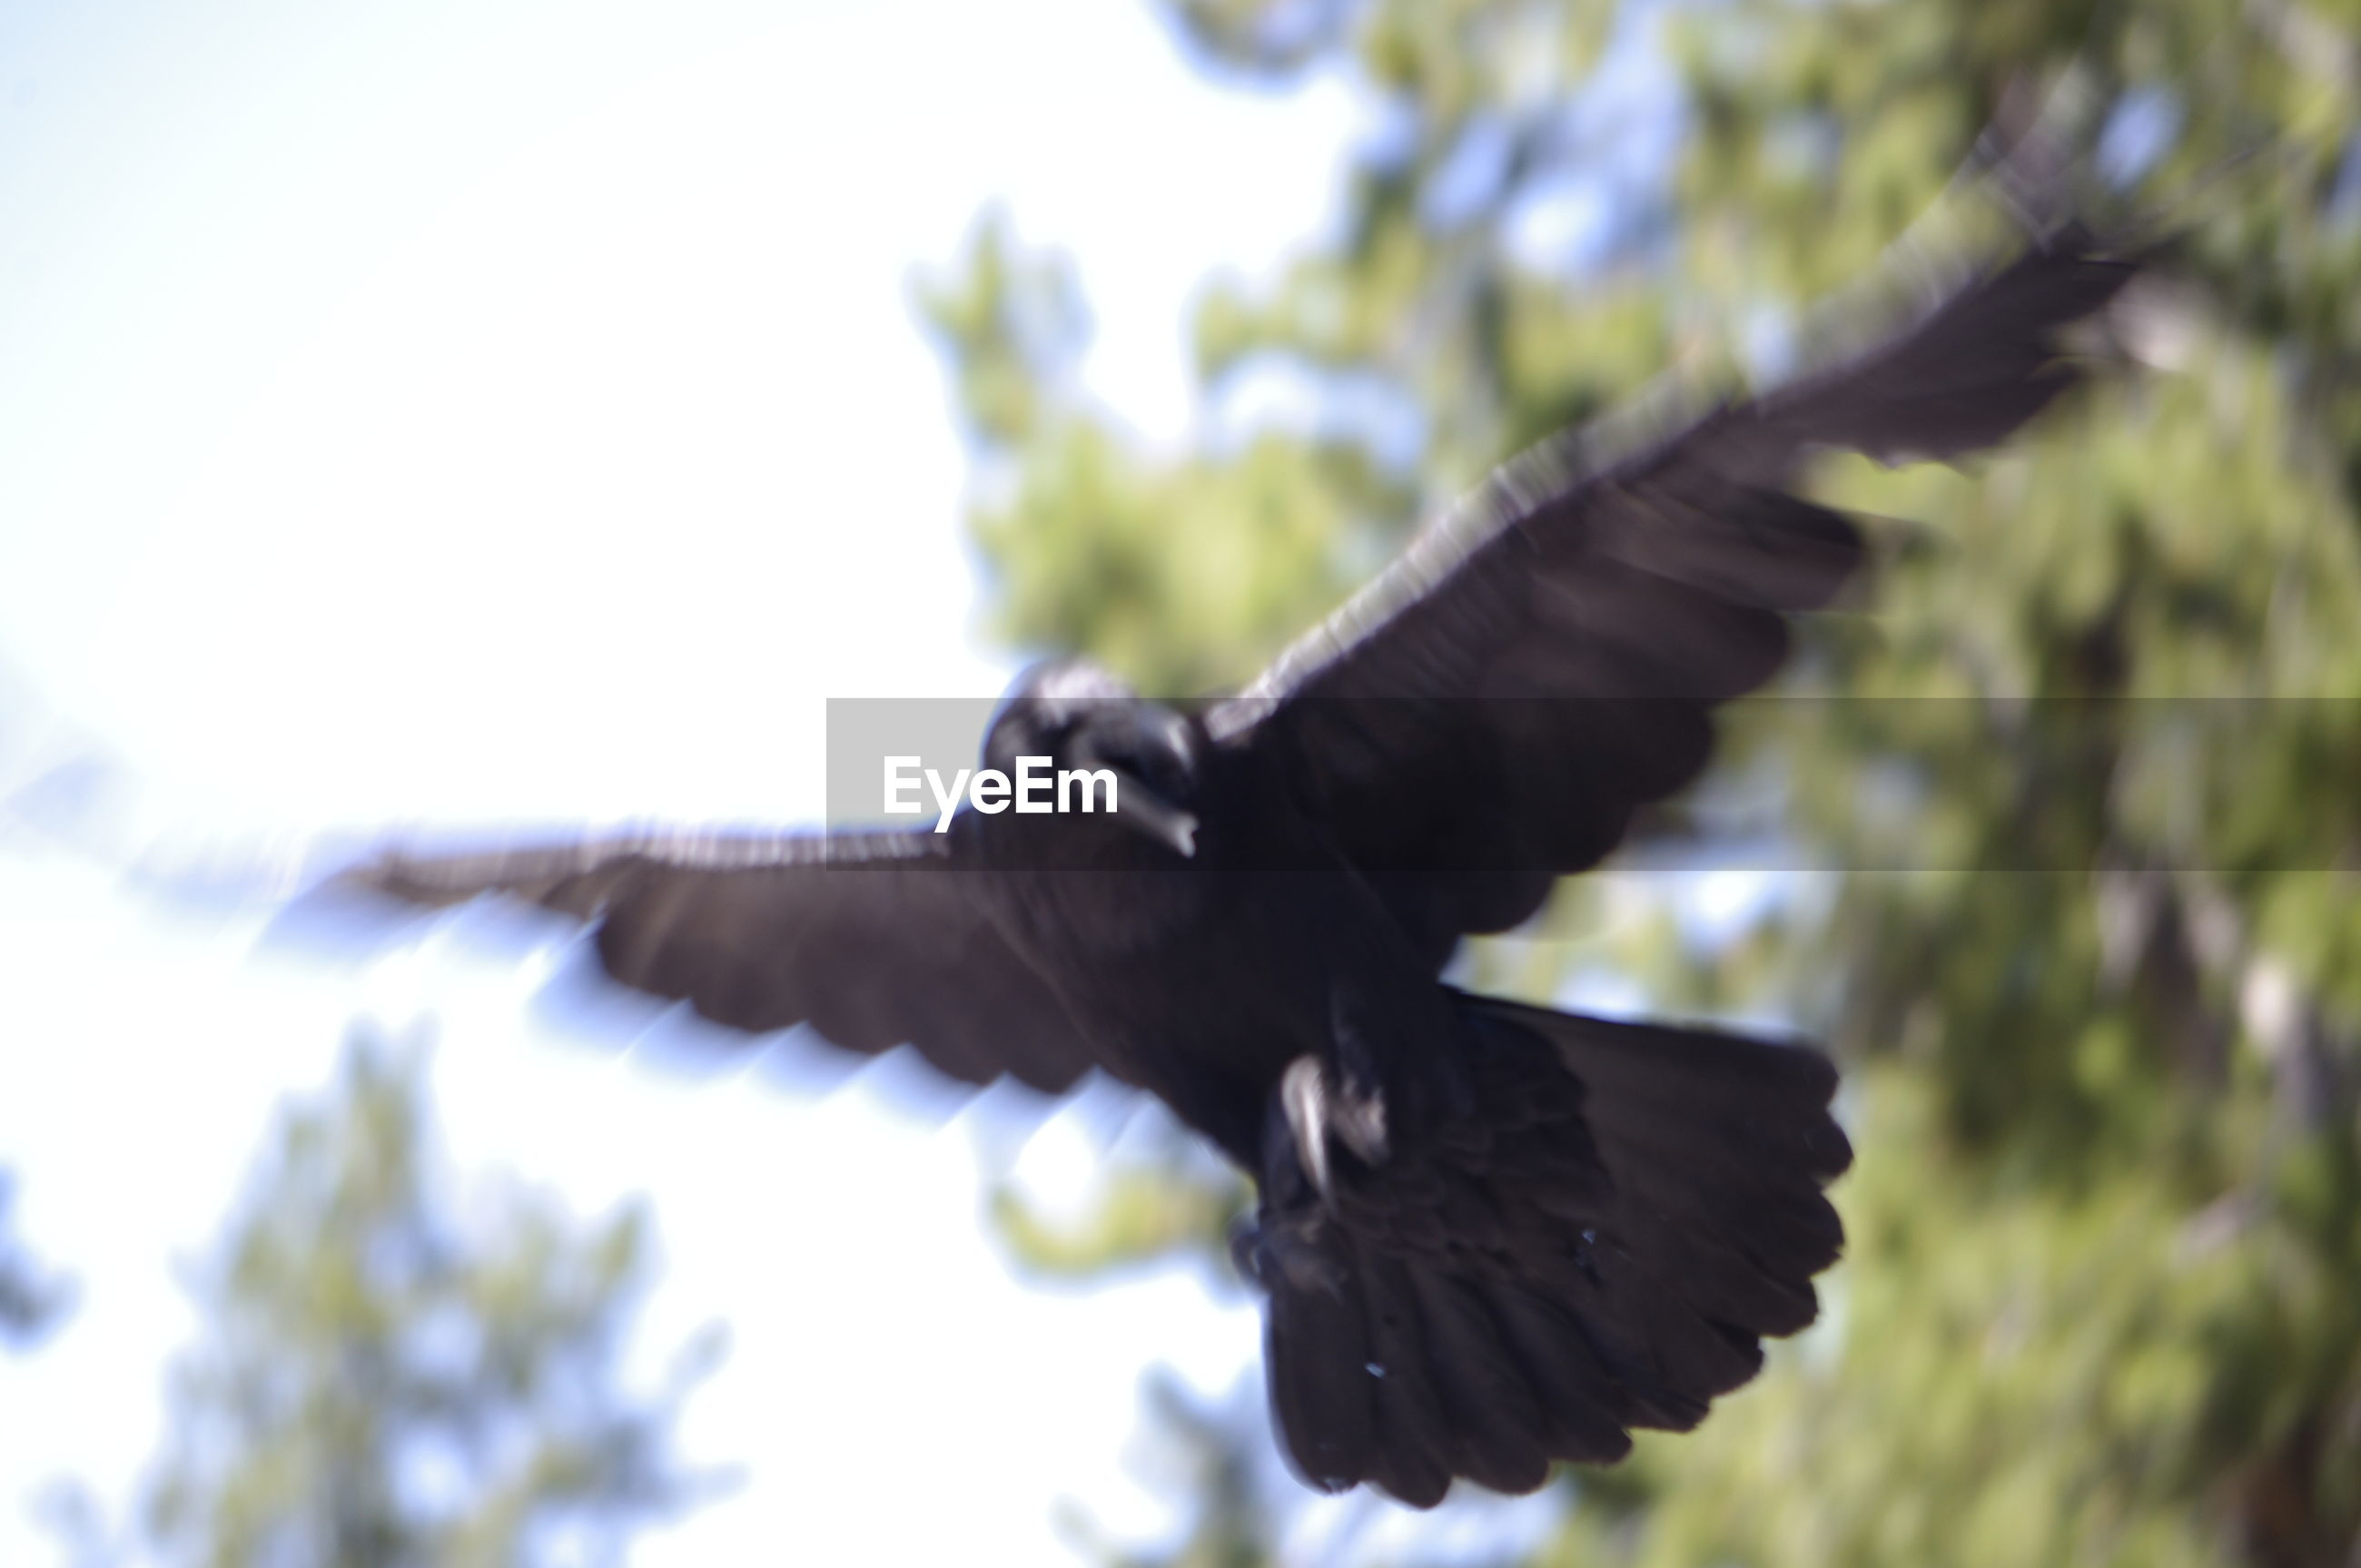 CLOSE-UP OF BIRD FLYING IN SKY